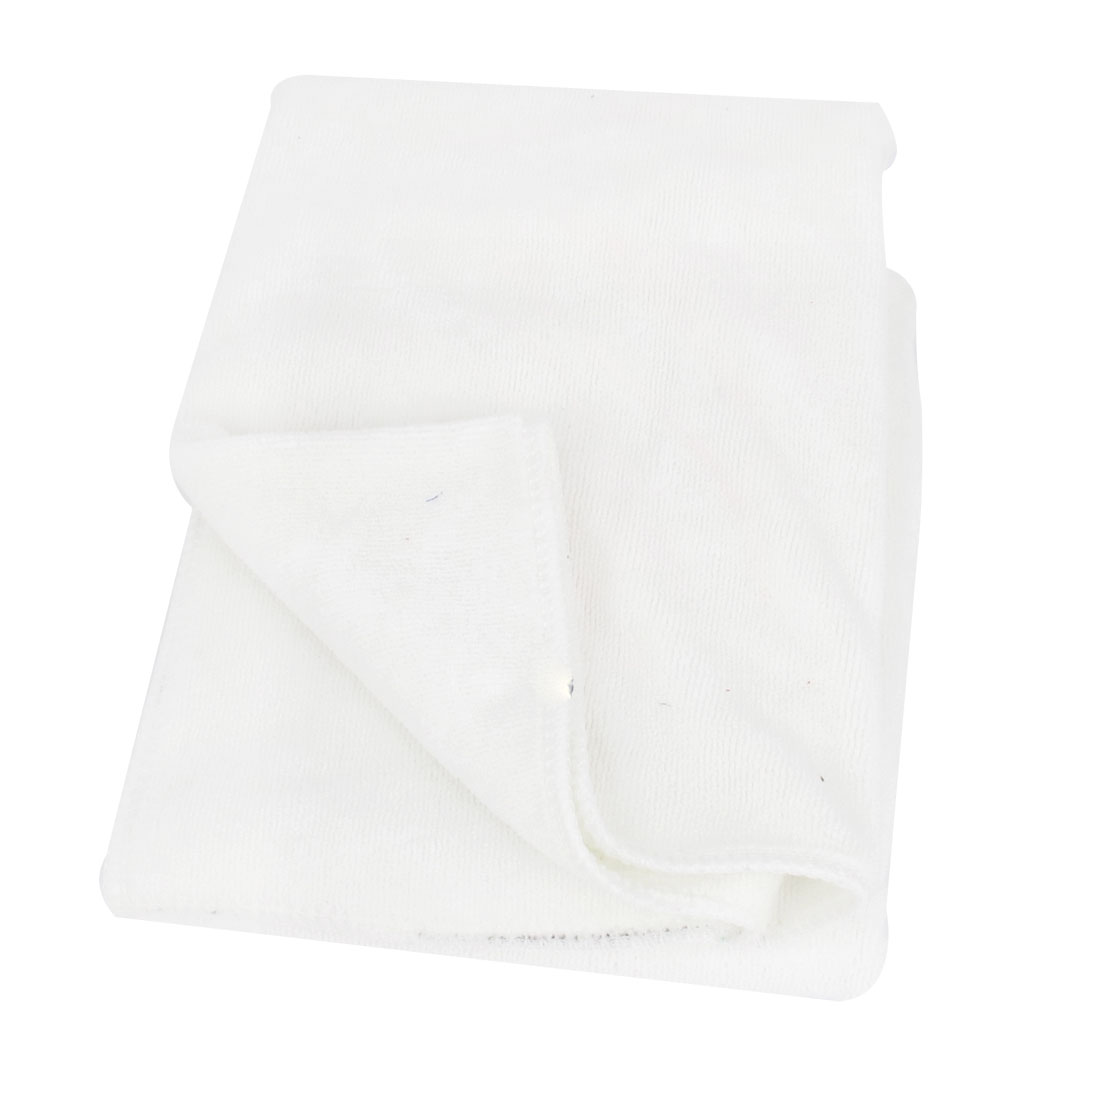 70cm x 50cm White Microfiber Soft Face Washing Glass Cleaning Towel Tool